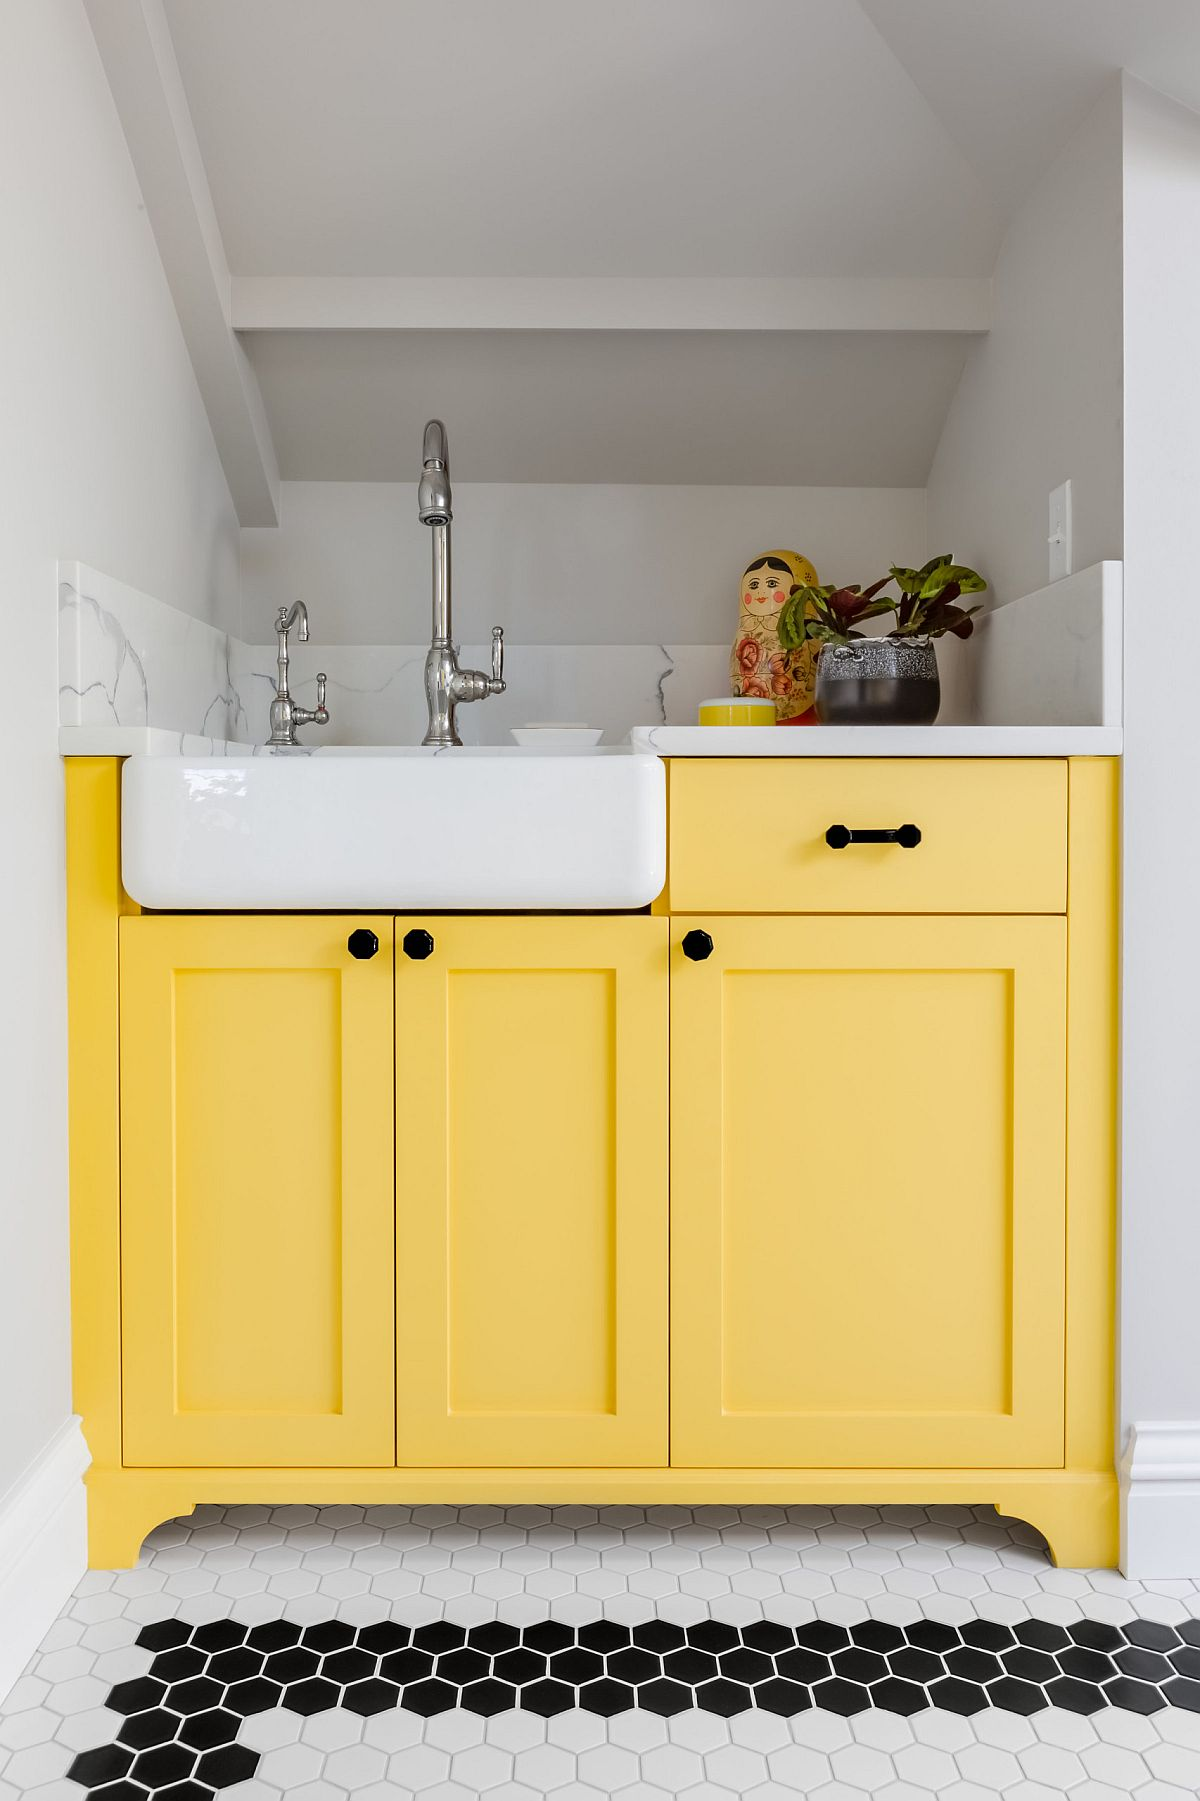 Cabinets in beautiful yellow add sparkle and freshness to the modern neutral interior